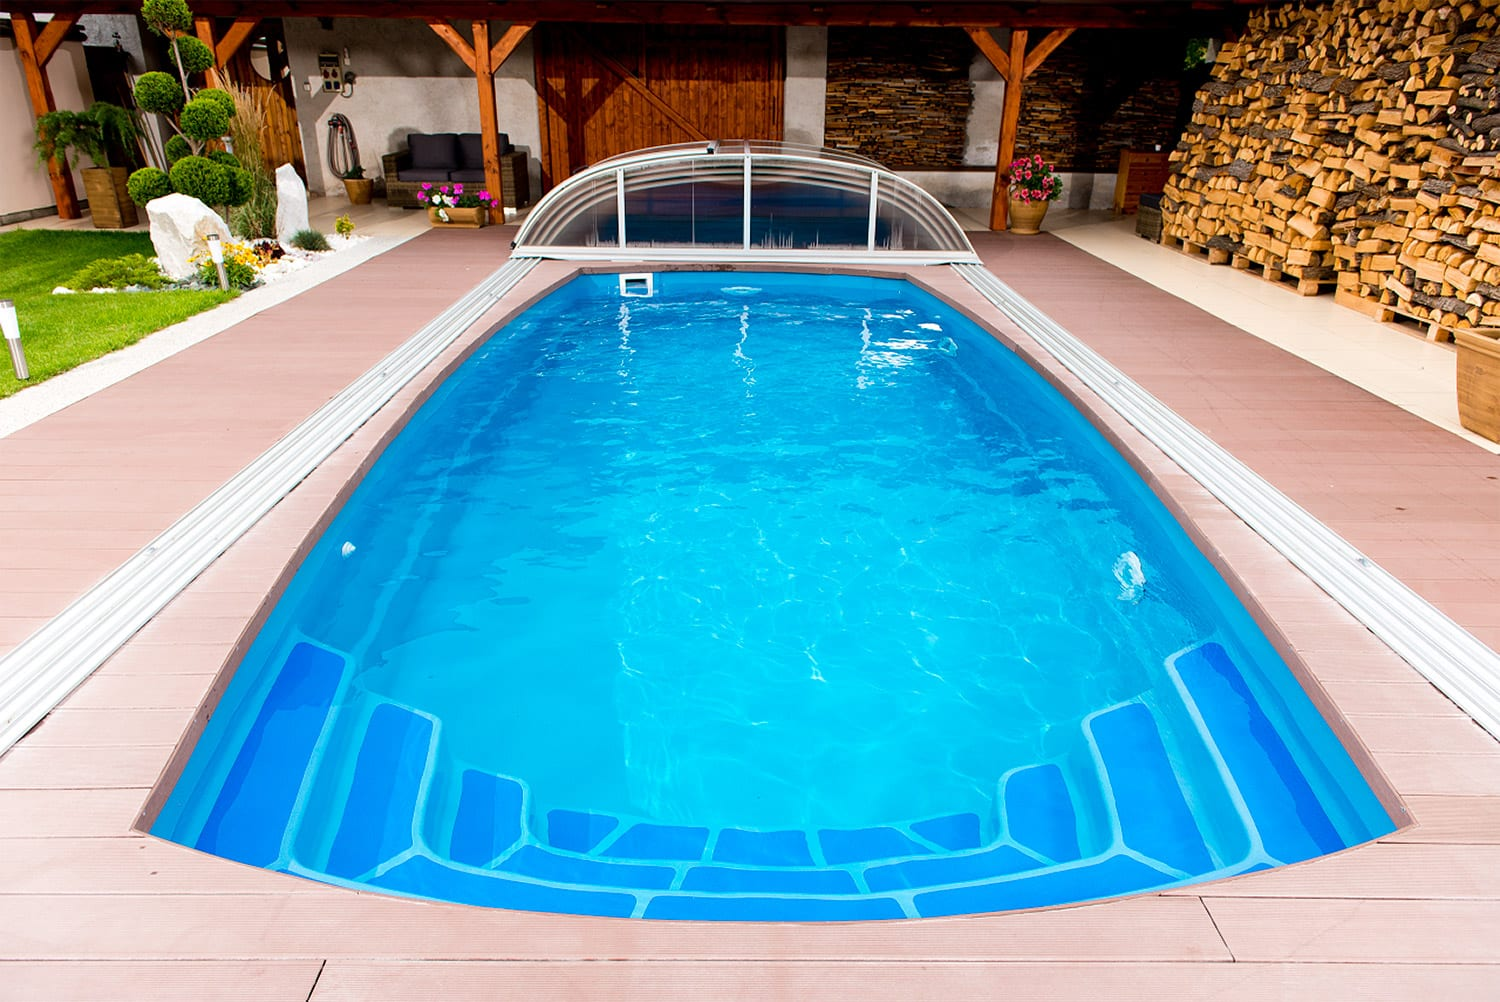 Coral ORION Glass-Composite Pool (7.5m X 3.5m X 1.5m)